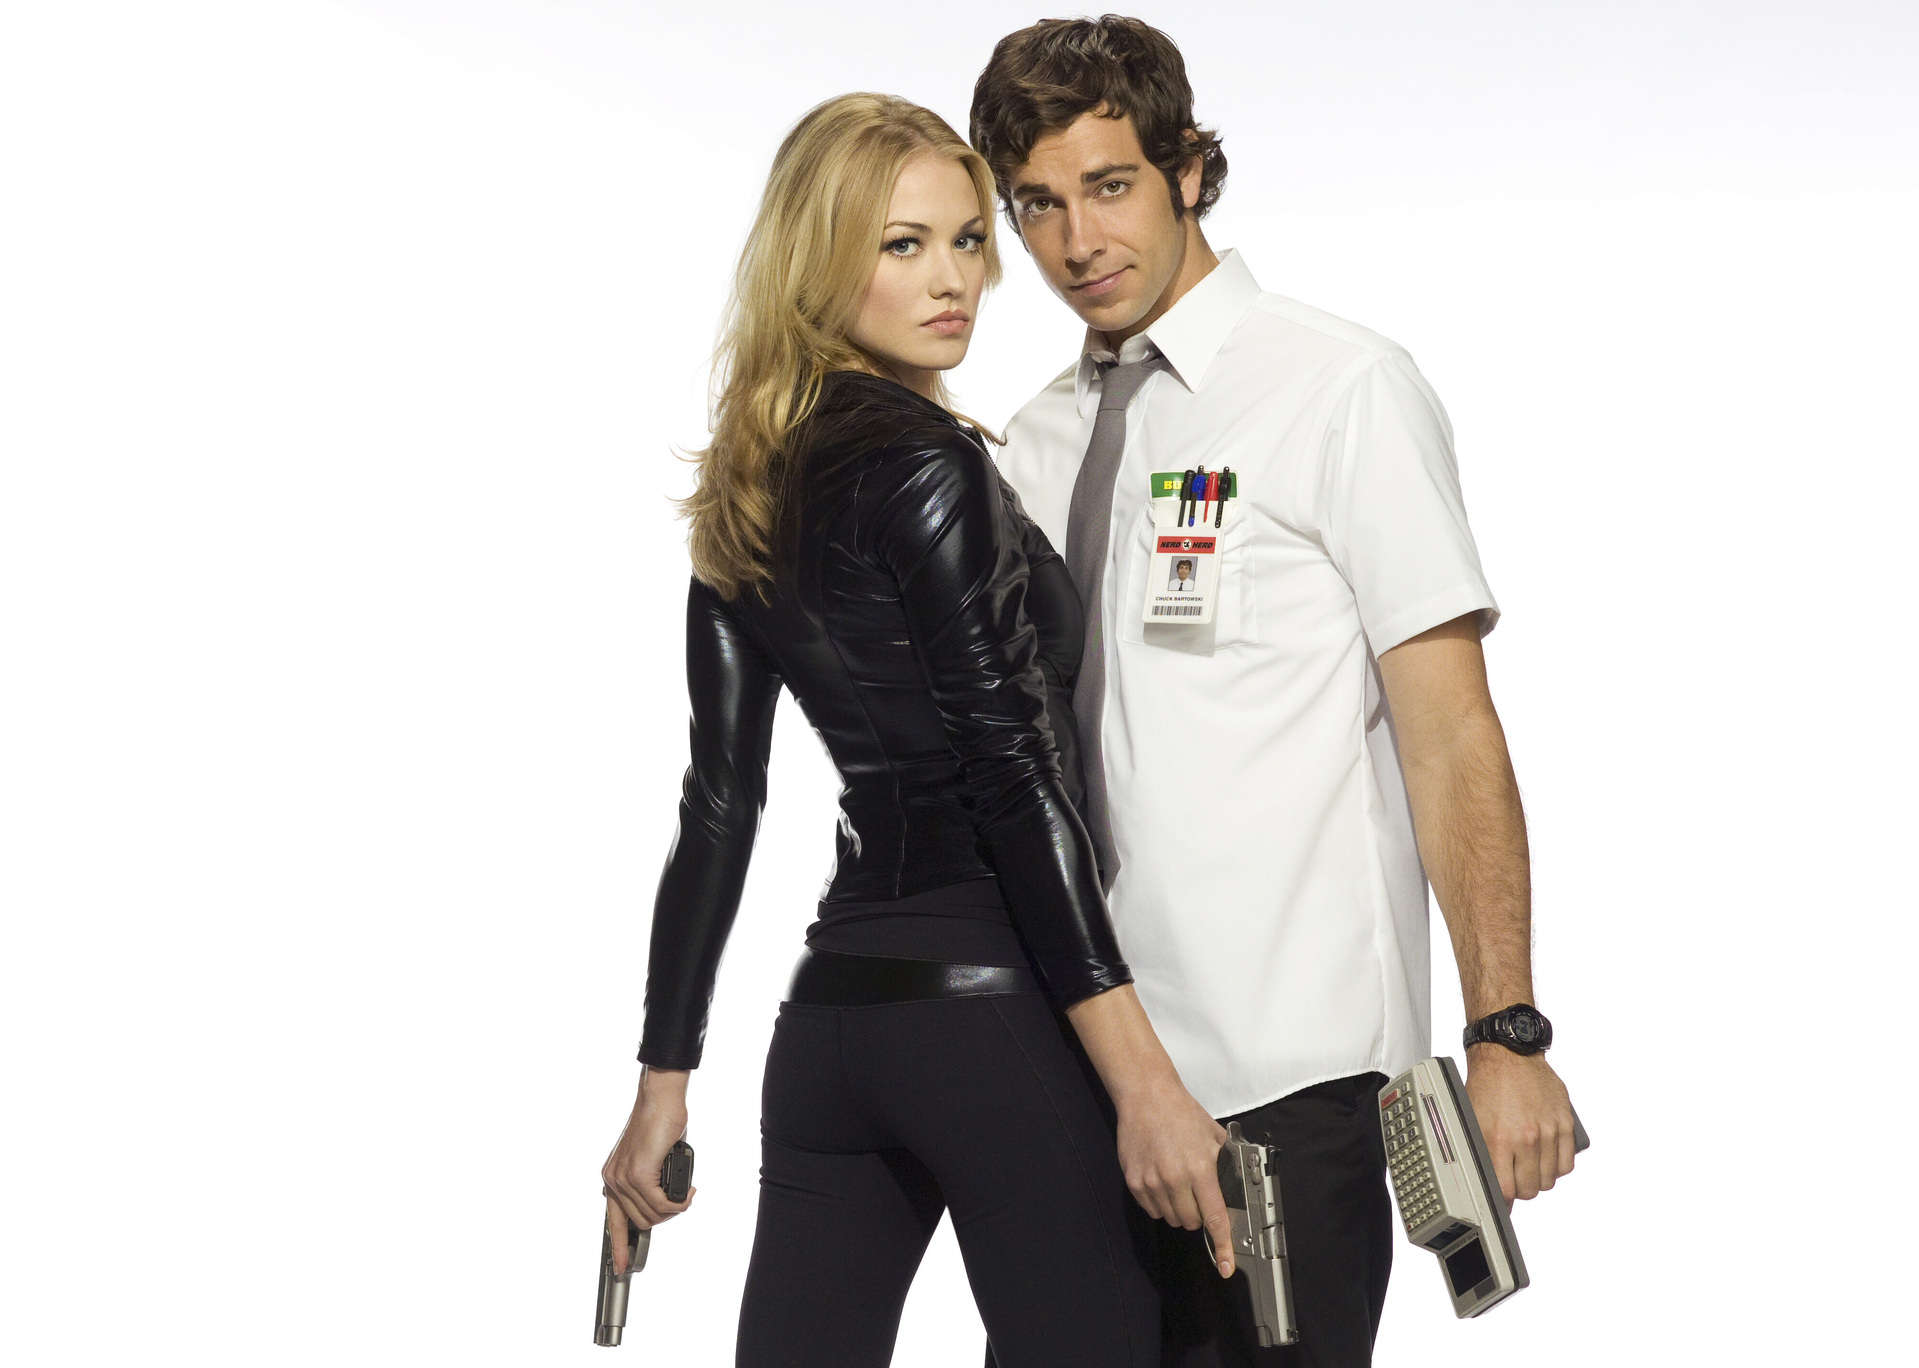 Index of /wallpaper/cat/tv/chuck-tv-series-hd-wallpaper-2013